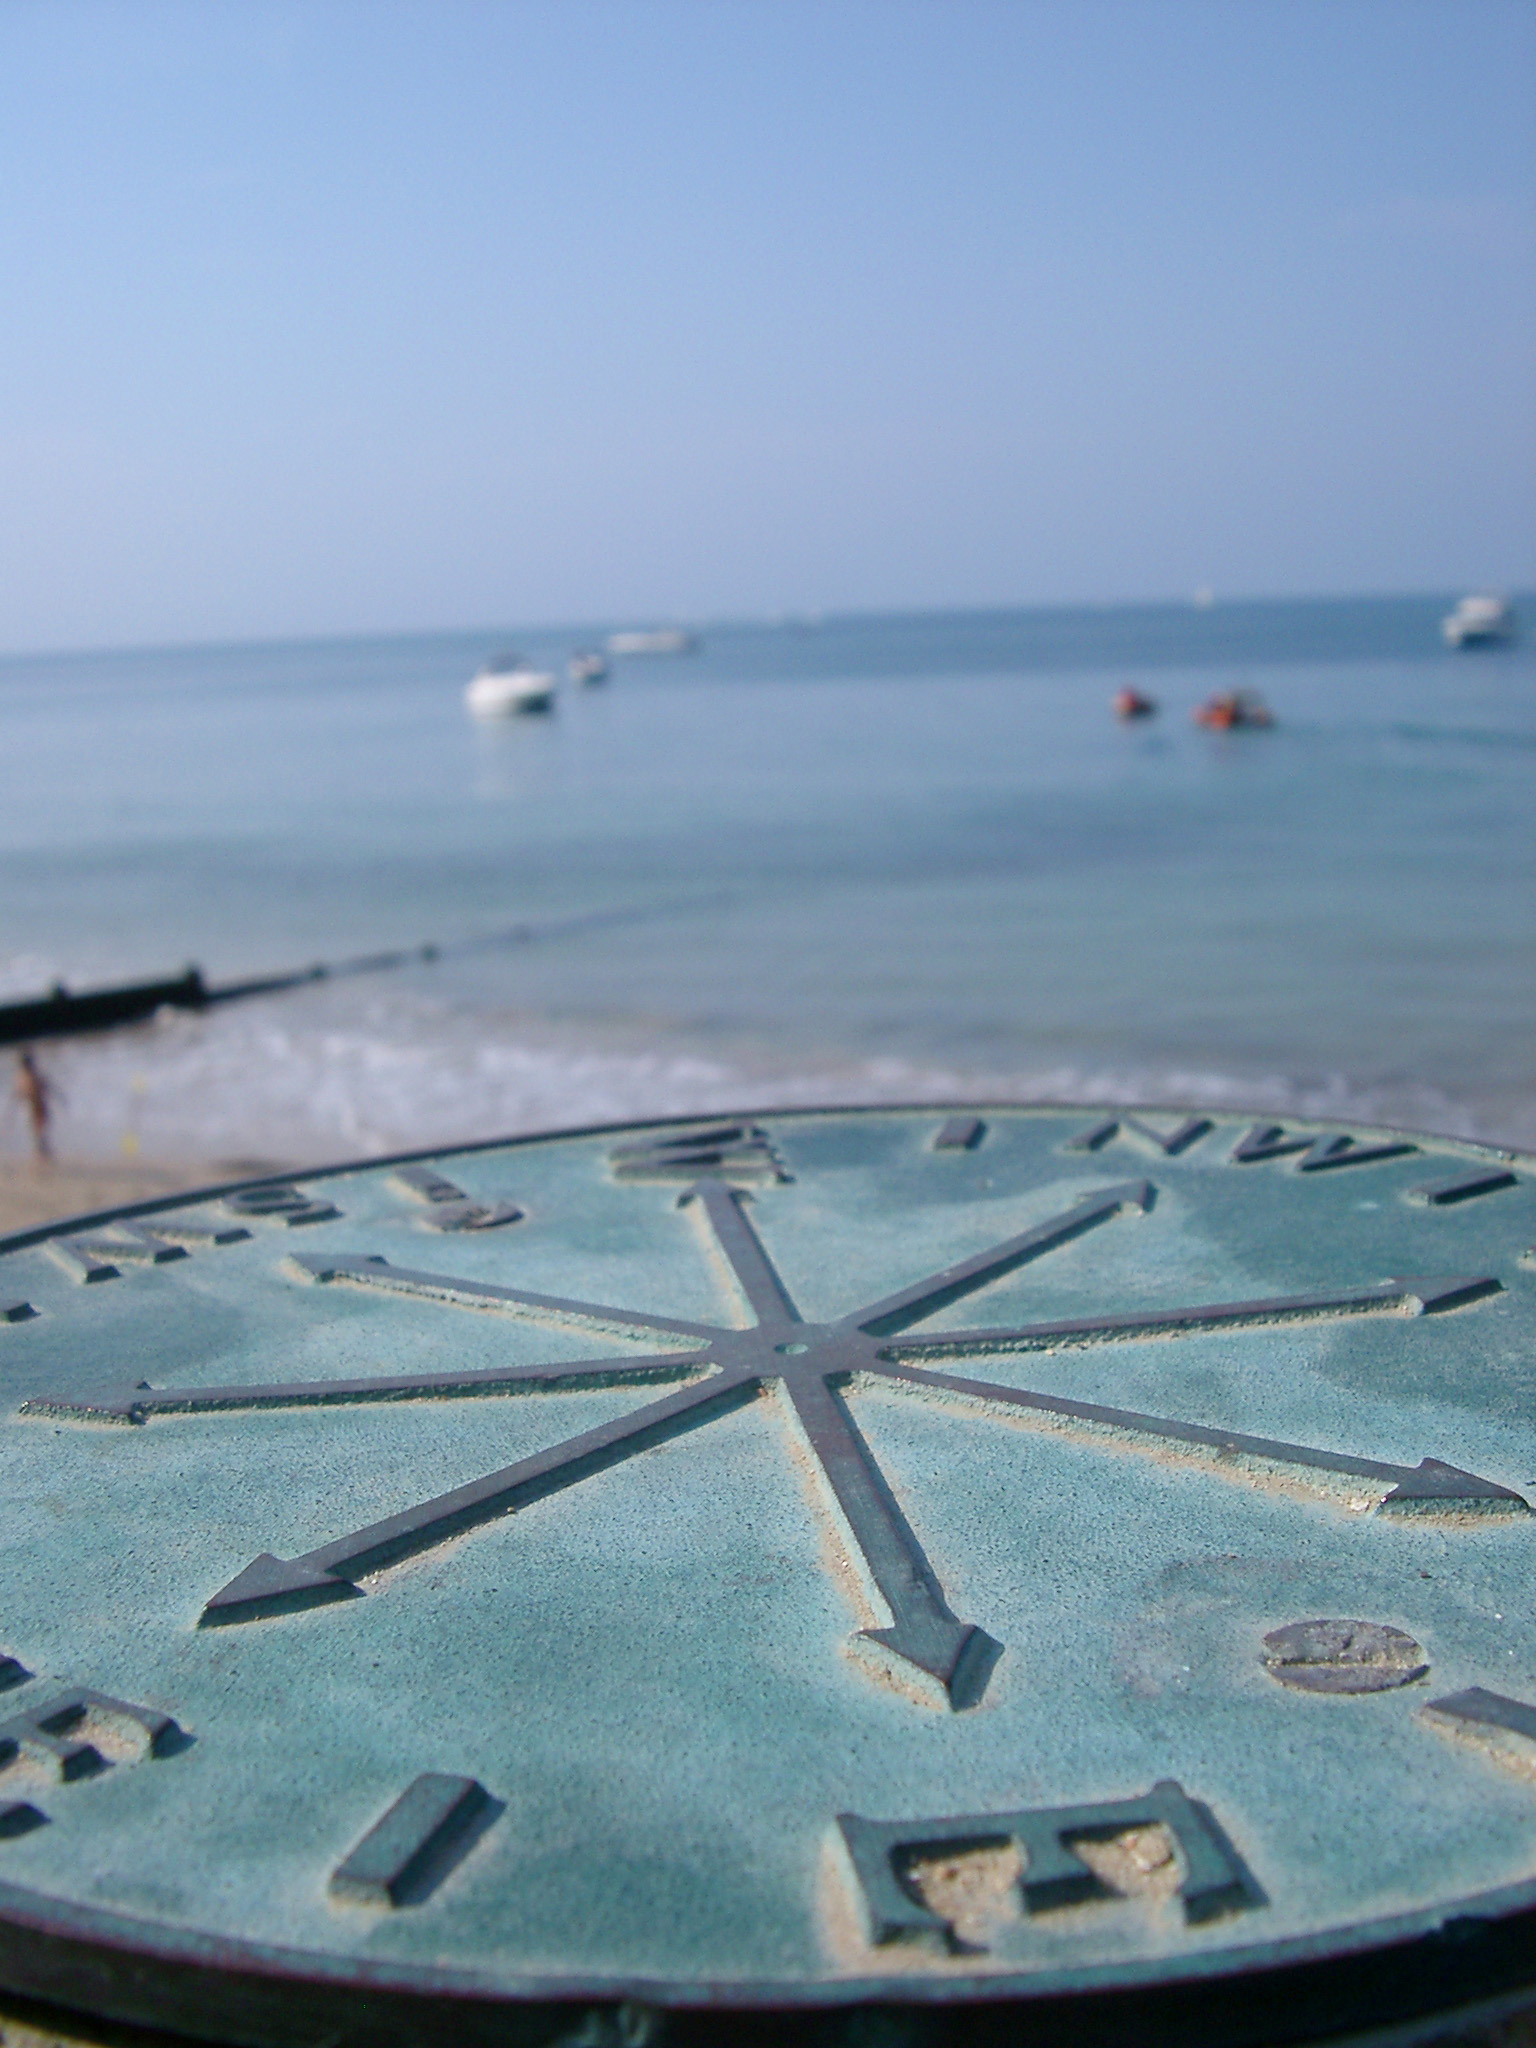 Low angle view over the dial showing the compass points of a brass marine compass overlooking the ocean and moored small boats